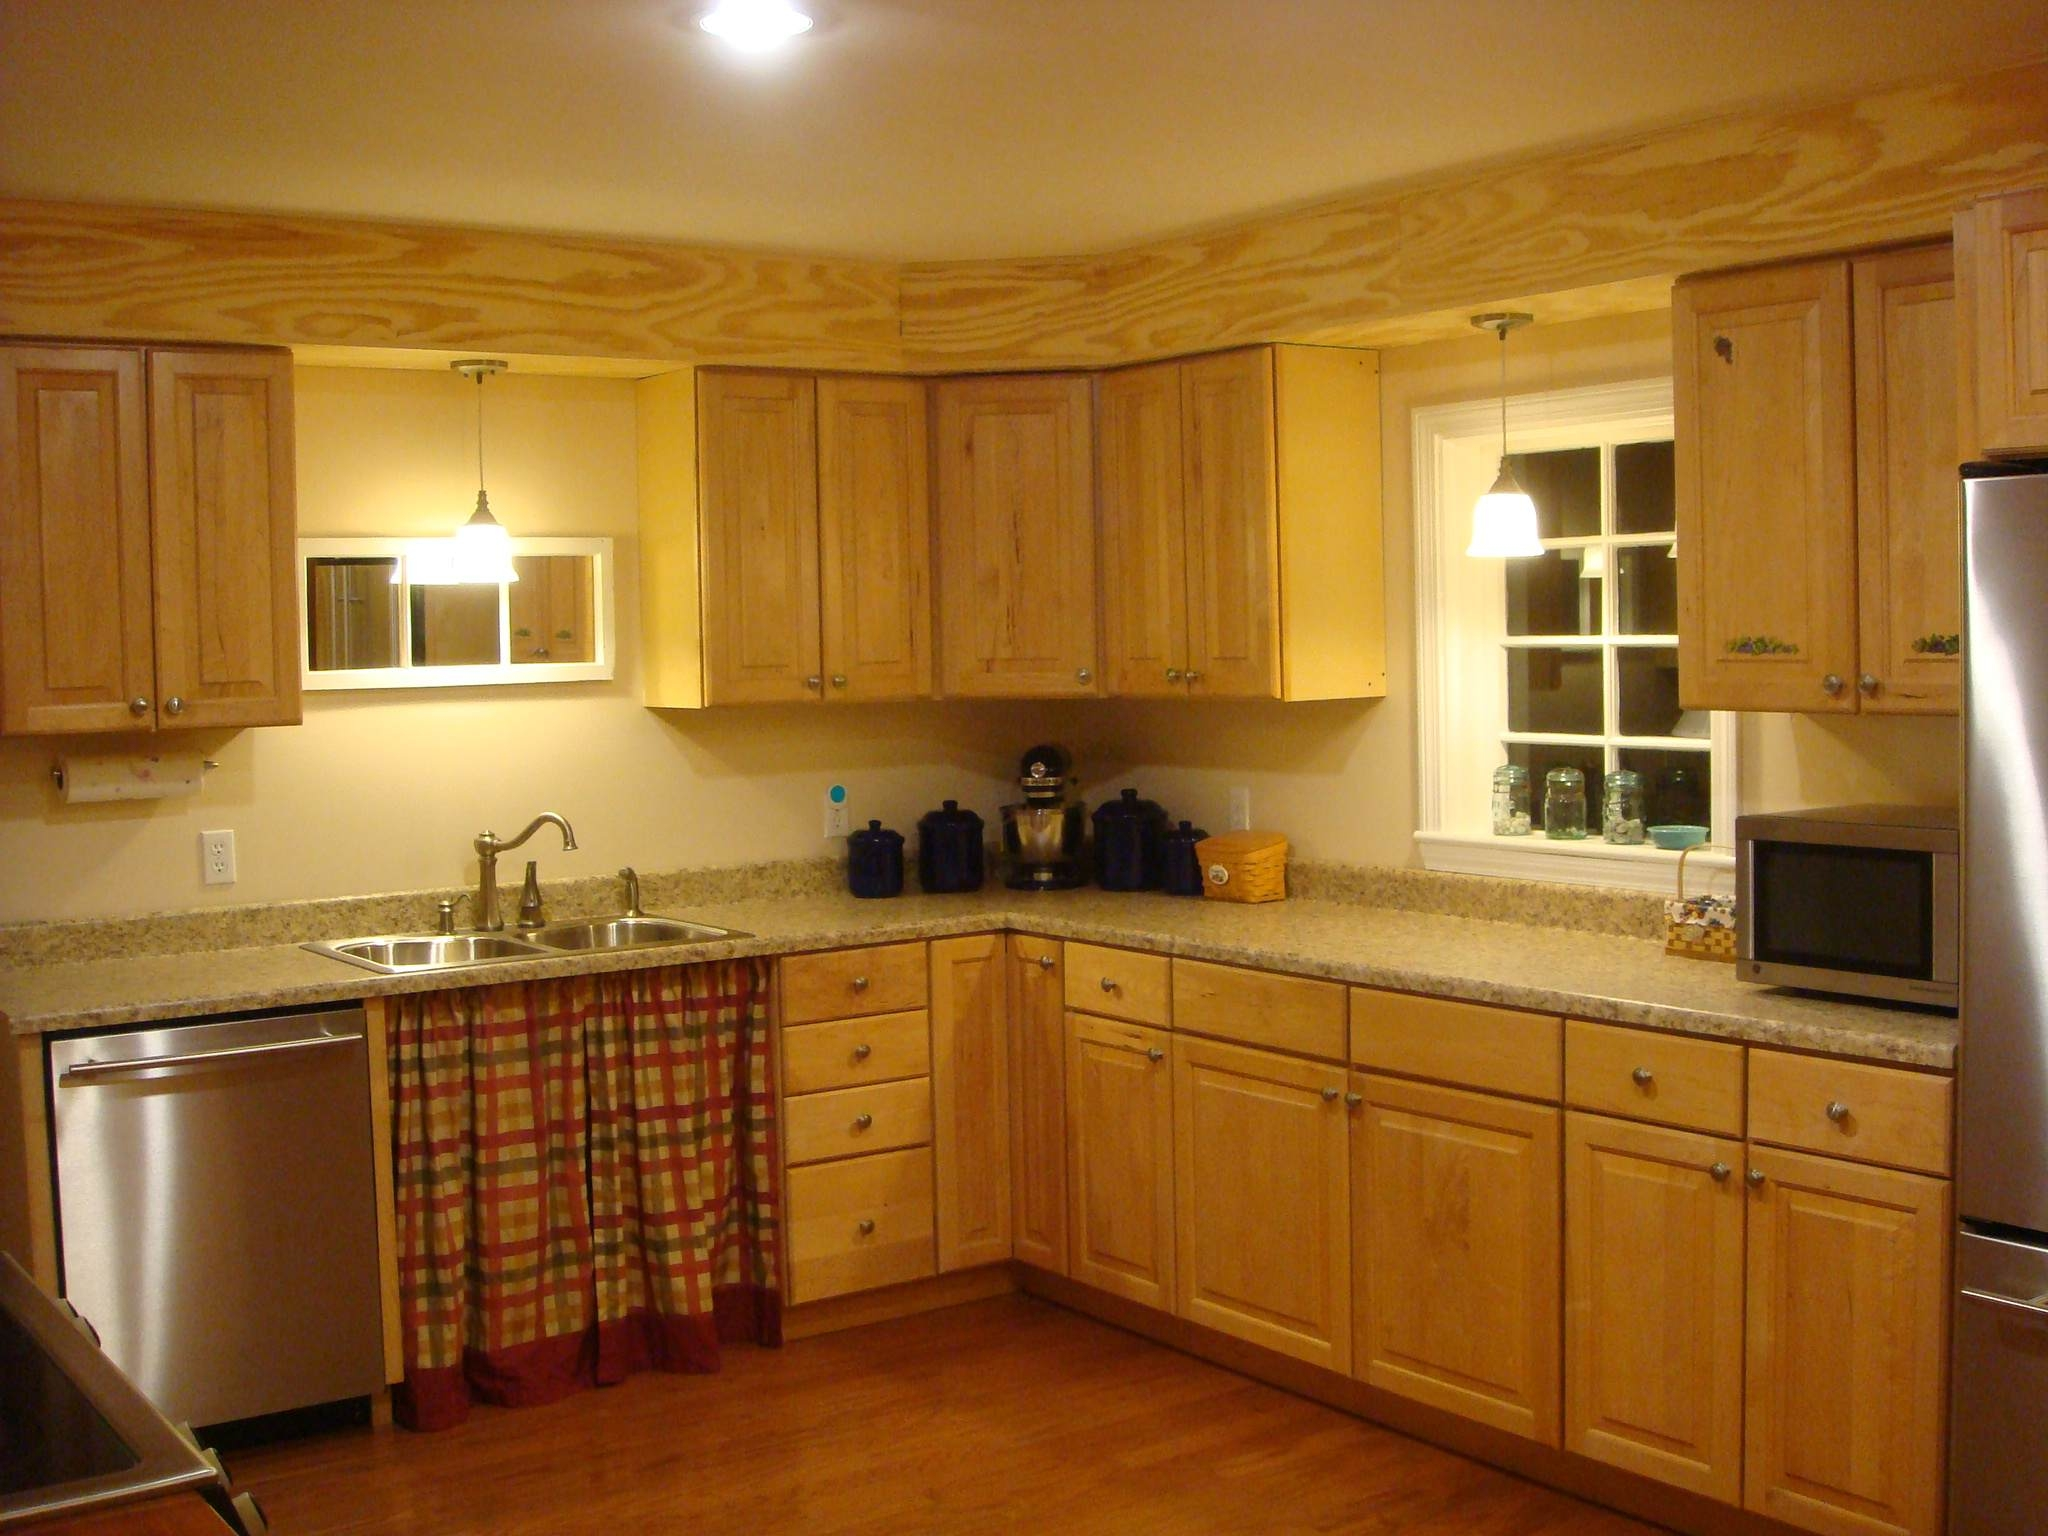 Permalink to Decorating Ideas For Soffit Above Kitchen Cabinets